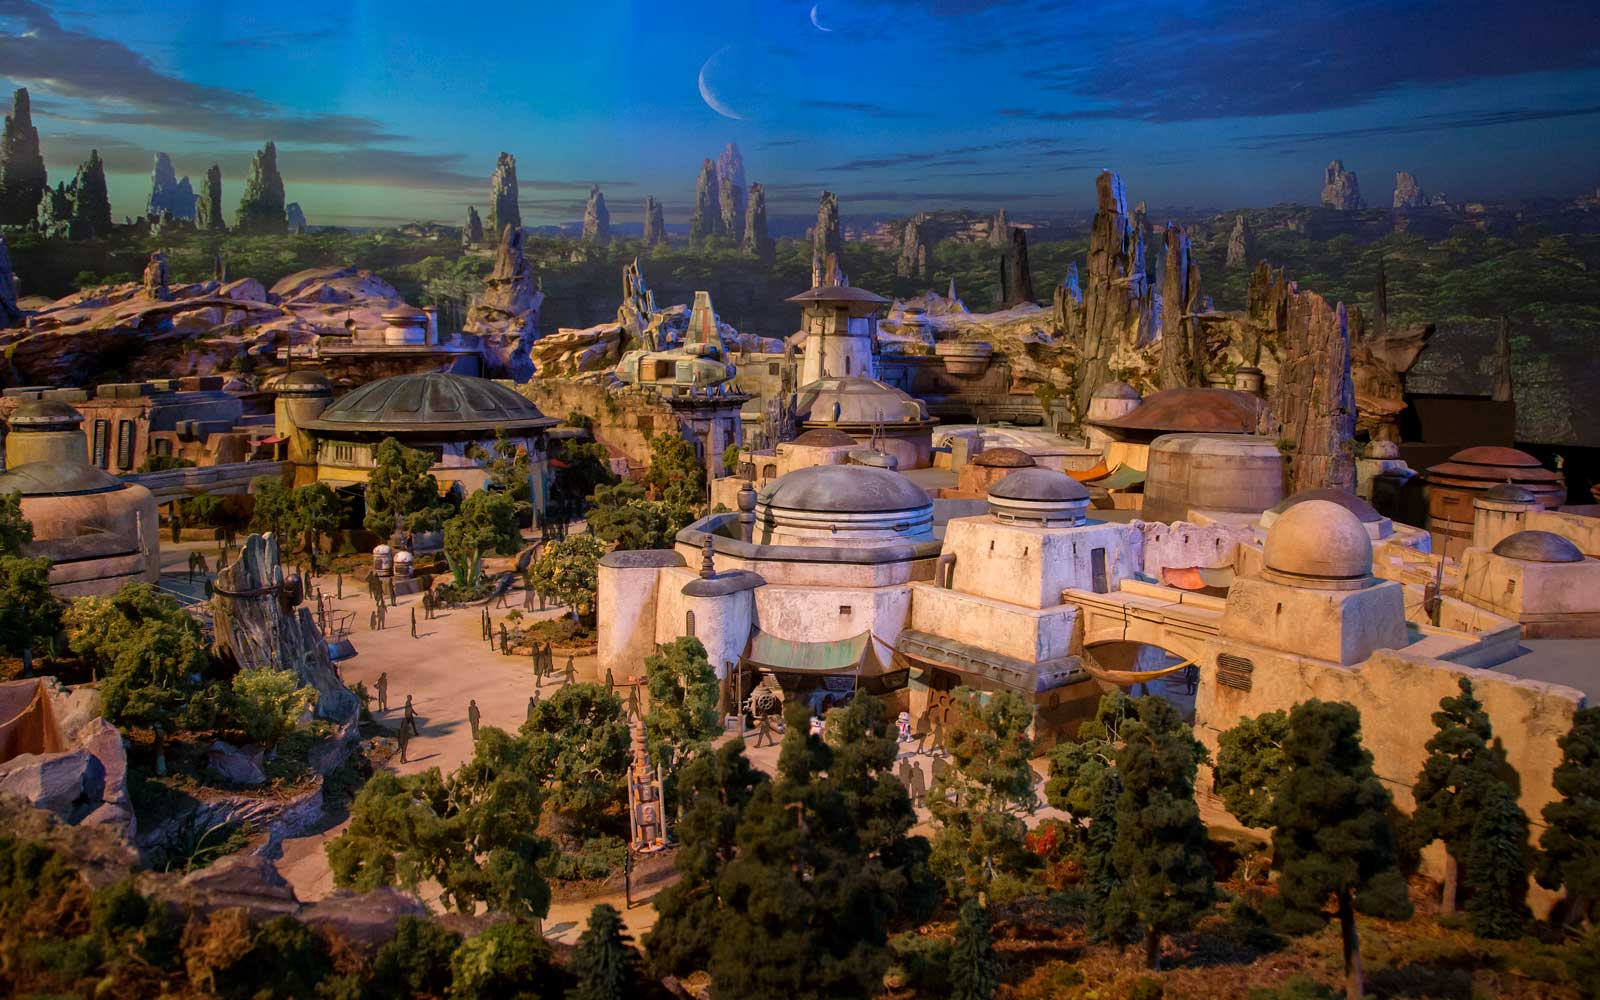 Disneyland Will Offer 4-hour Reservations for Visiting Star Wars Land